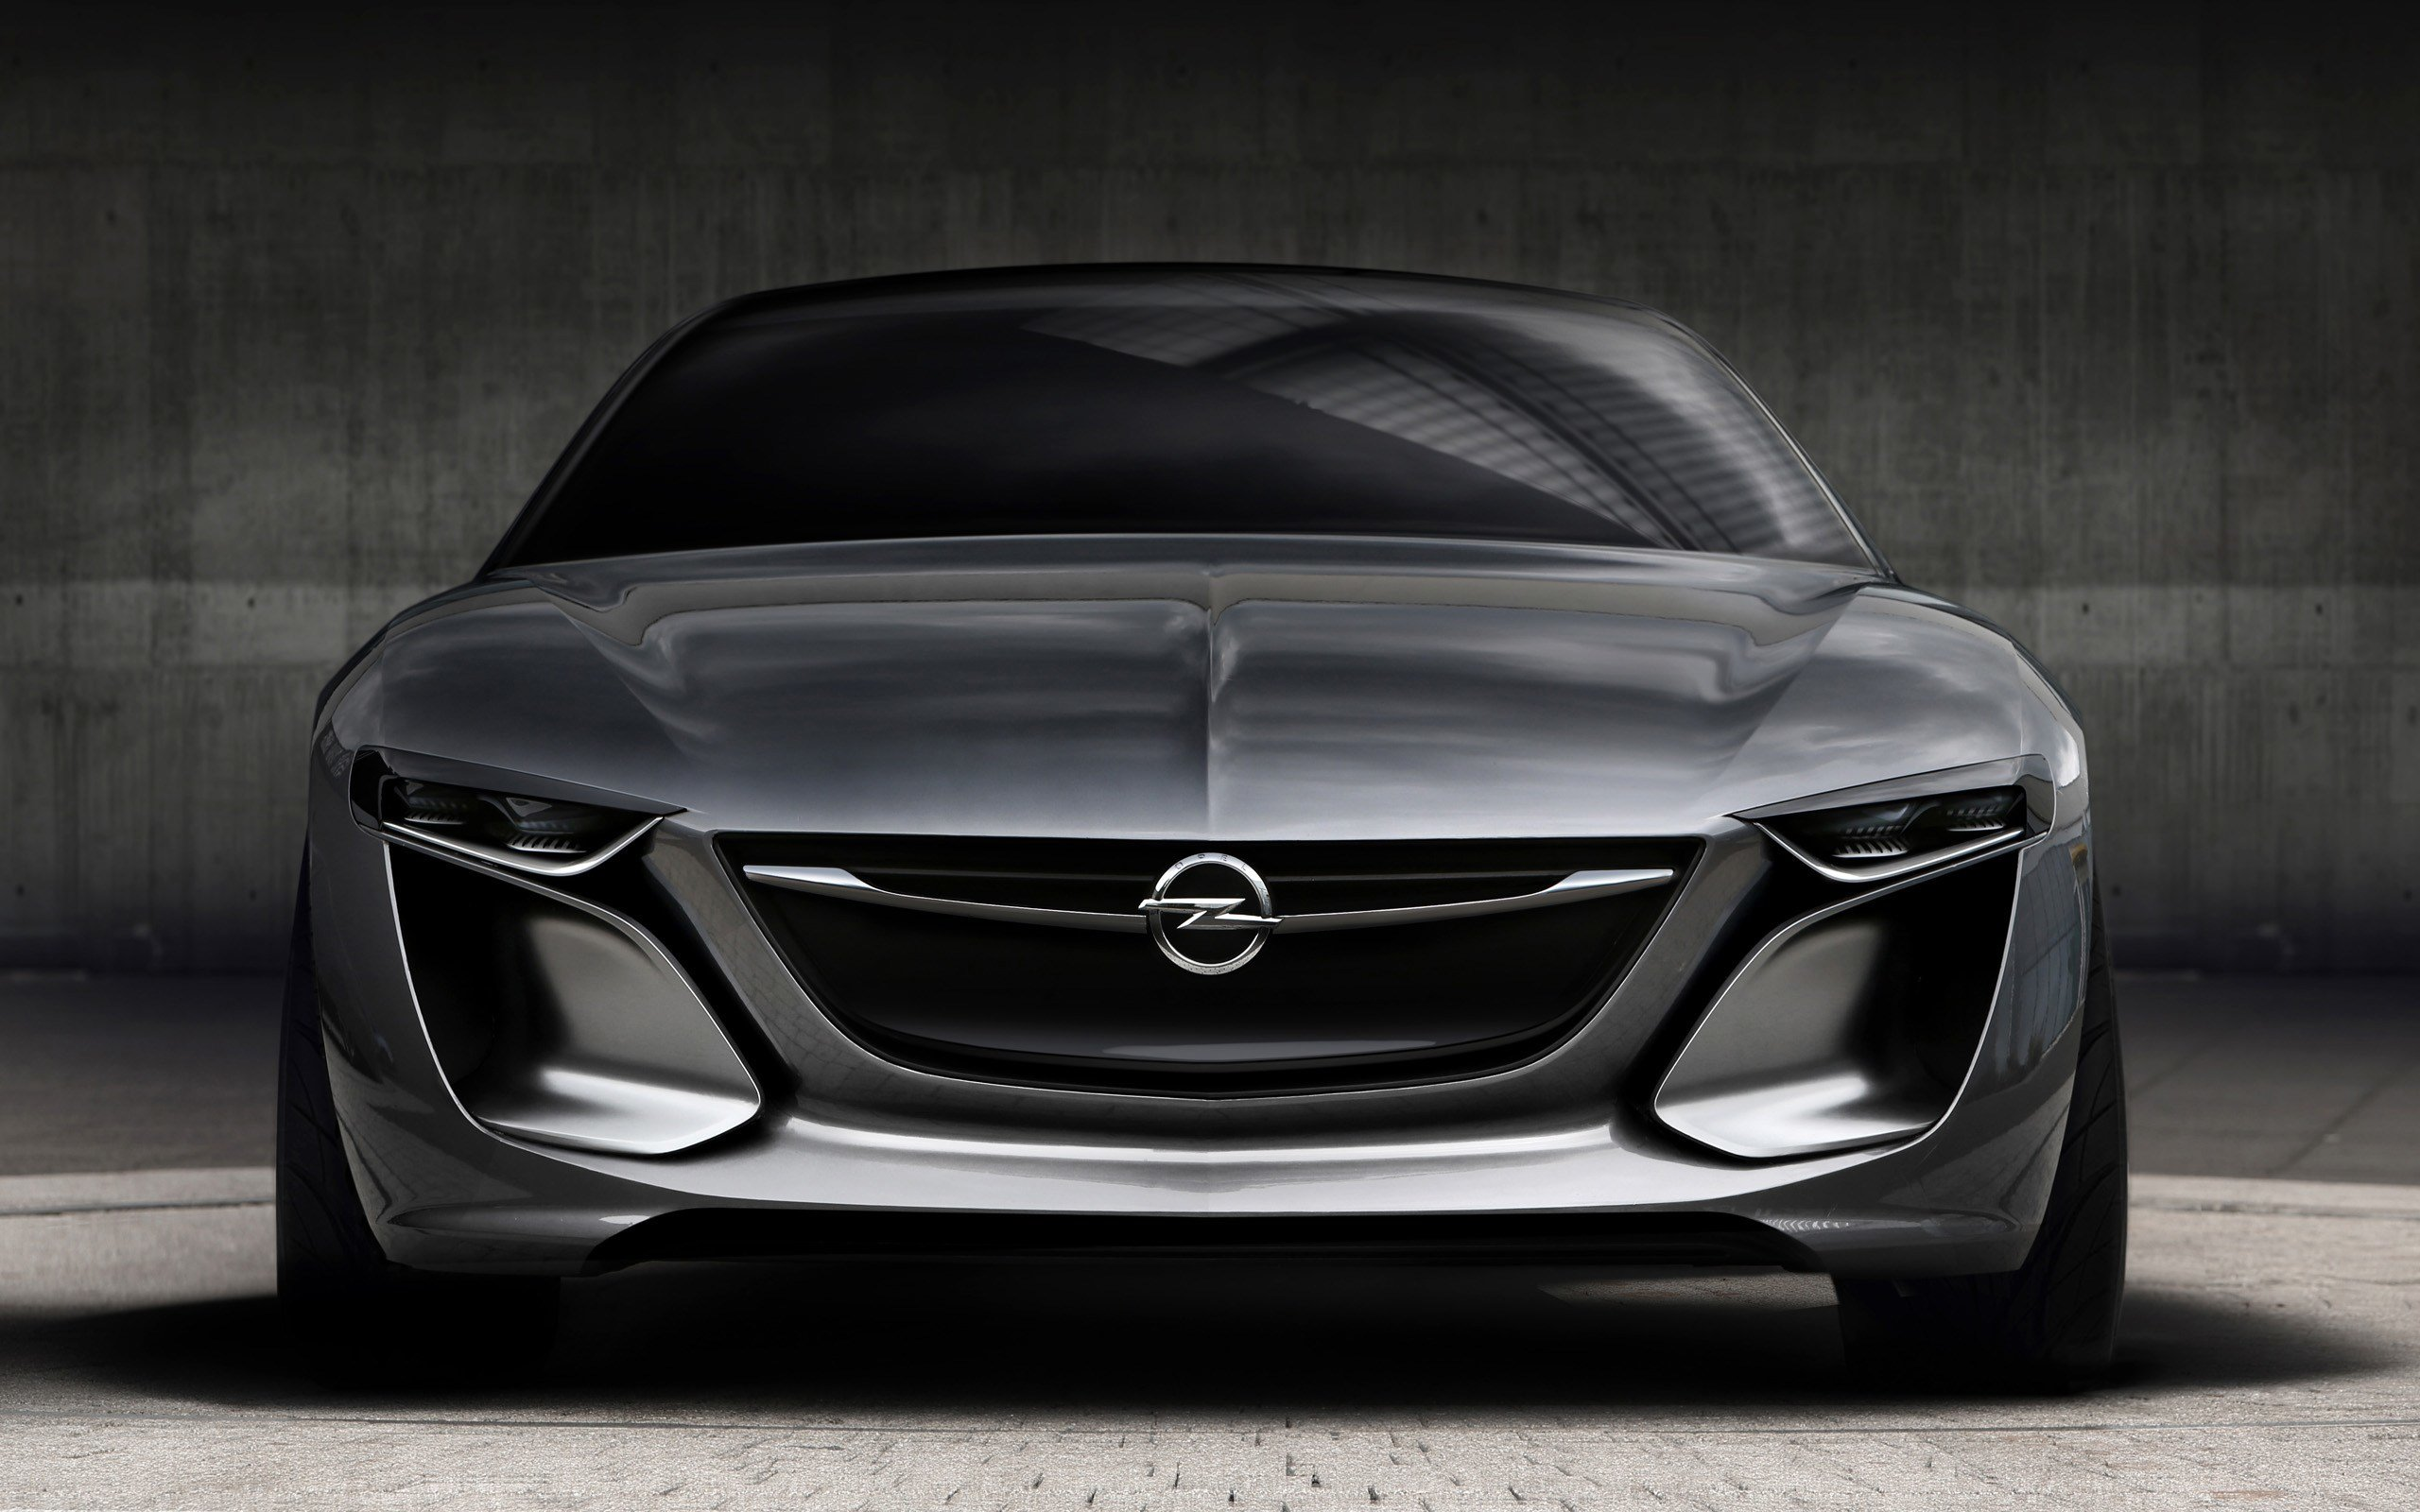 Latest 2013 Opel Monza Concept 3 Wallpaper Hd Car Wallpapers Id 3762 Free Download